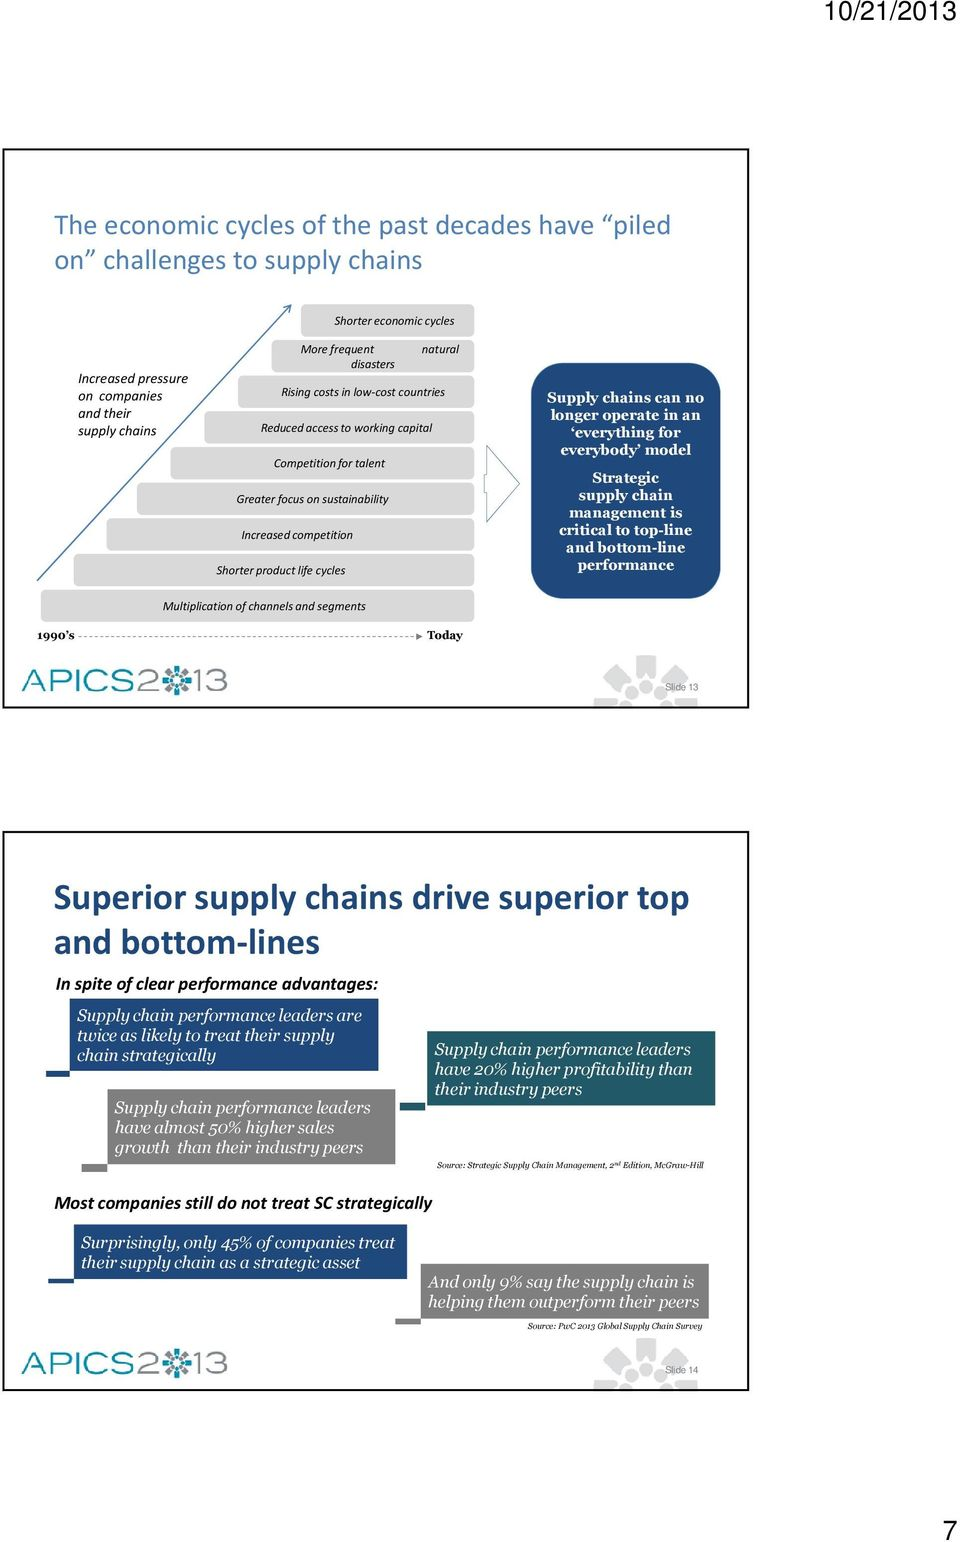 longer operate in an everything for everybody model Strategic supply chain management is critical to top-line and bottom-line performance Multiplication of channels and segments 1990 s Today Slide 13